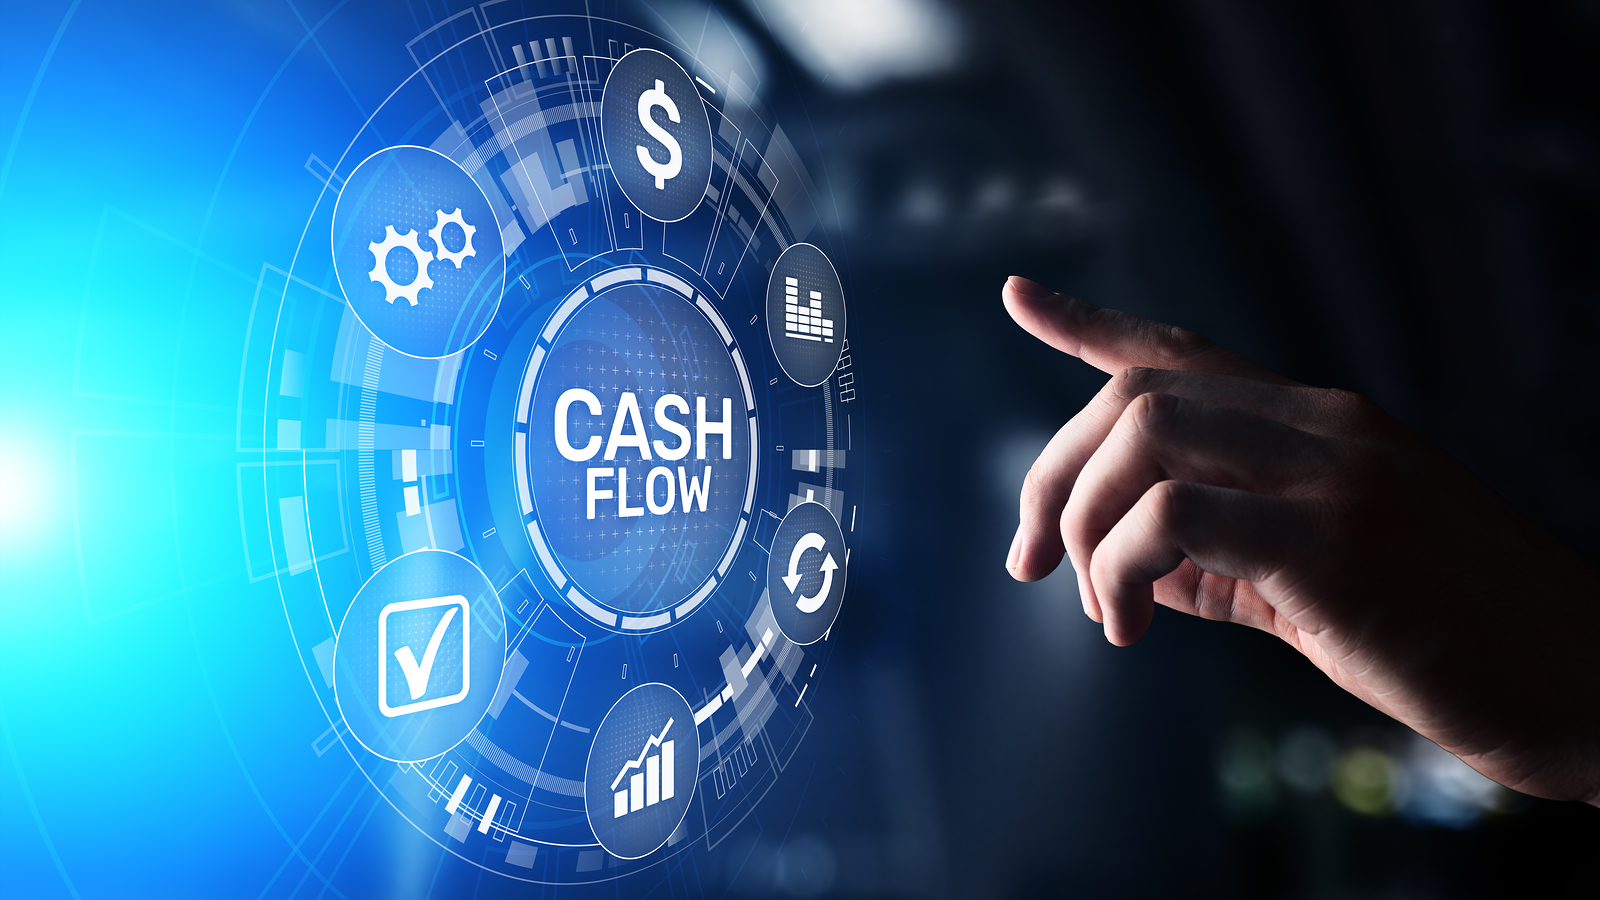 Satisfy Your Working Capital Needs with Alternative Finance Options